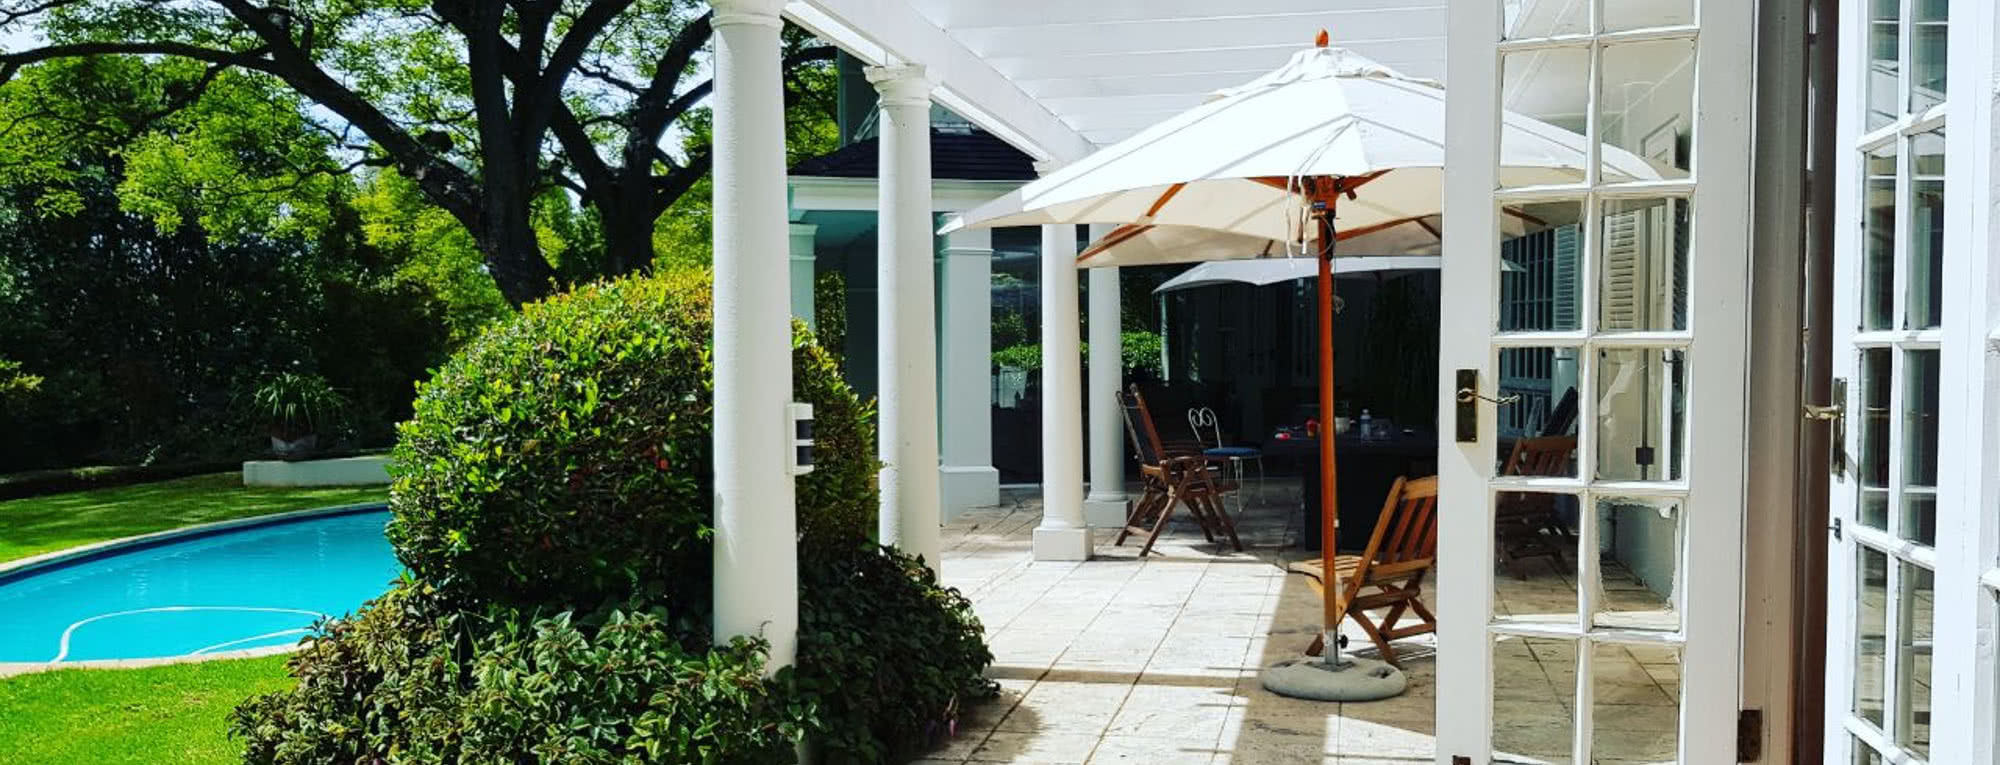 Drug Rehab and Alcohol Detox Center in Cape Town, South Africa - Back Area with Pool